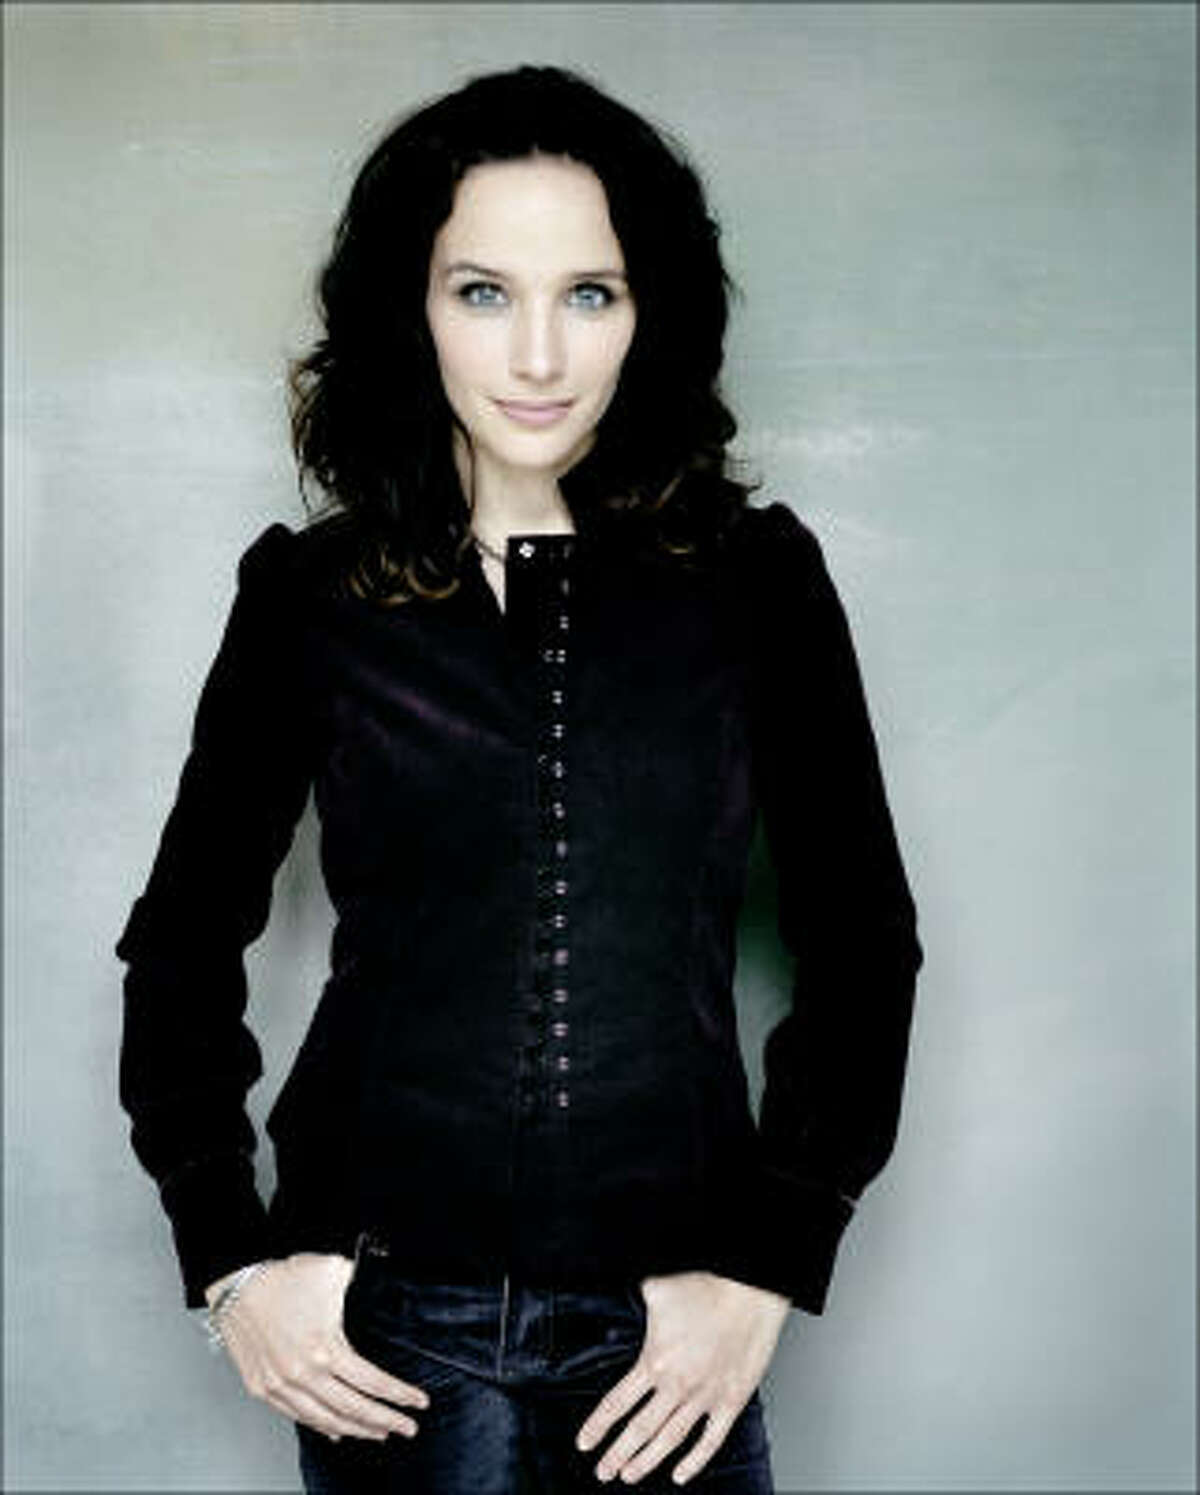 French pianist Hélène Grimaud showed particular delicacy of touch and subtlety of phrasing in the calm second movement of Brahms' Piano Concerto No. 1.